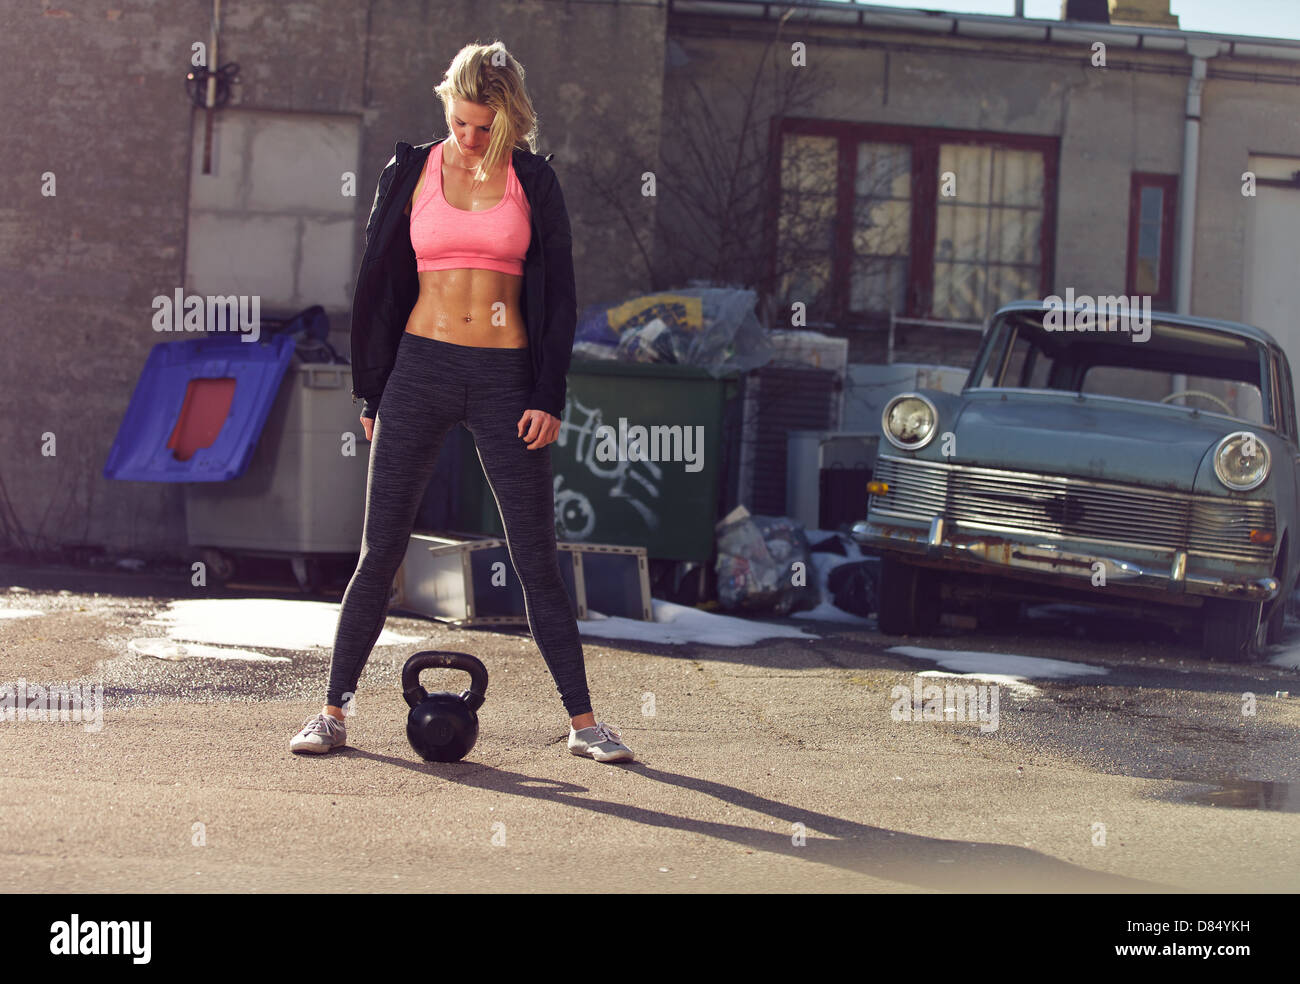 Ghetto girl with kettlebell in a crossfit training outdoor - Stock Image